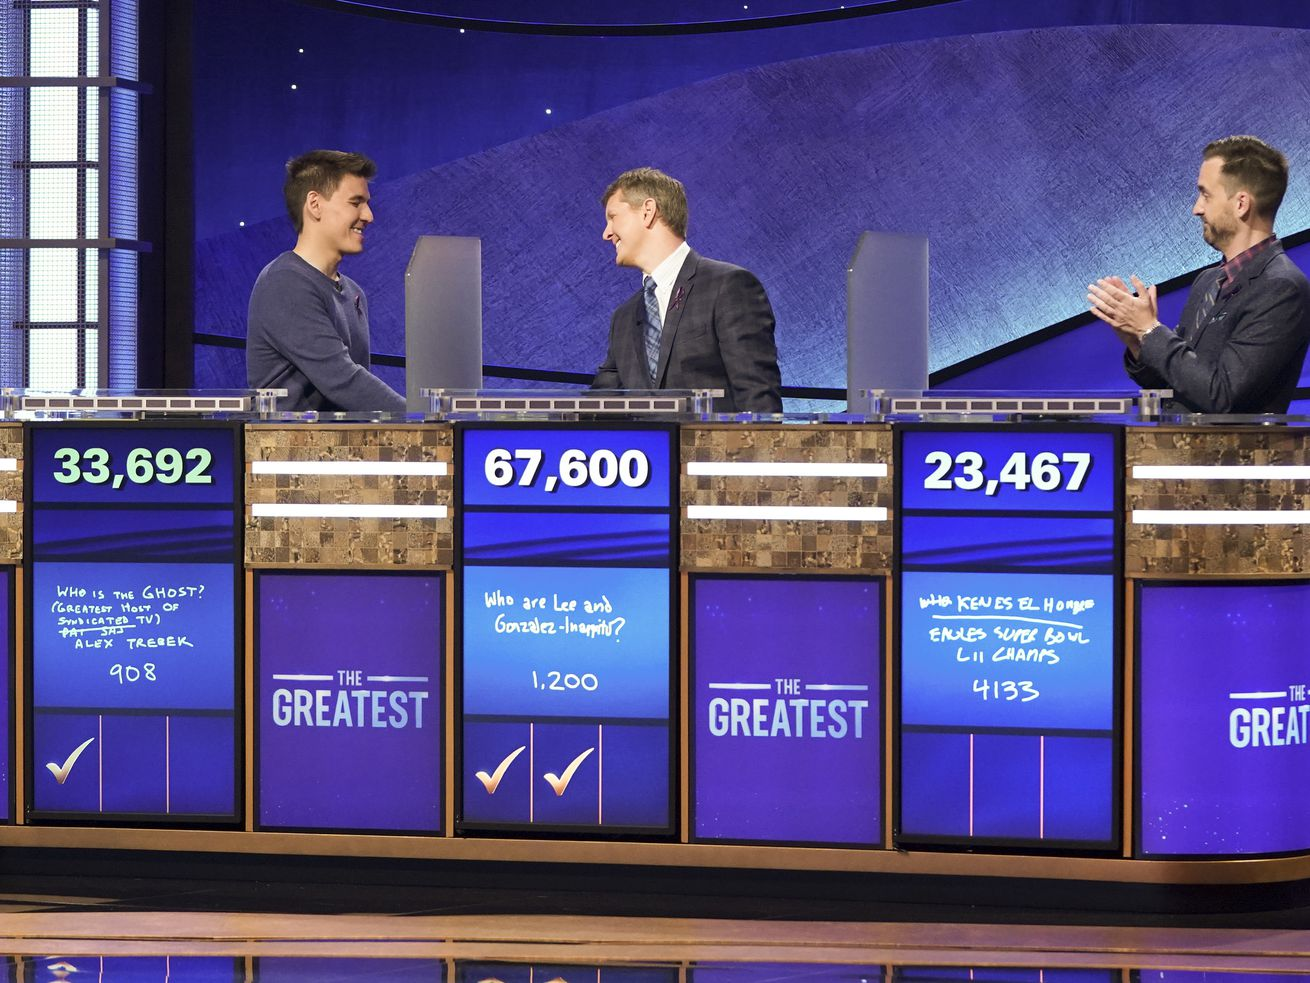 Ready for the 'Jeopardy!' test? Here's some tips from GOAT Ken Jennings